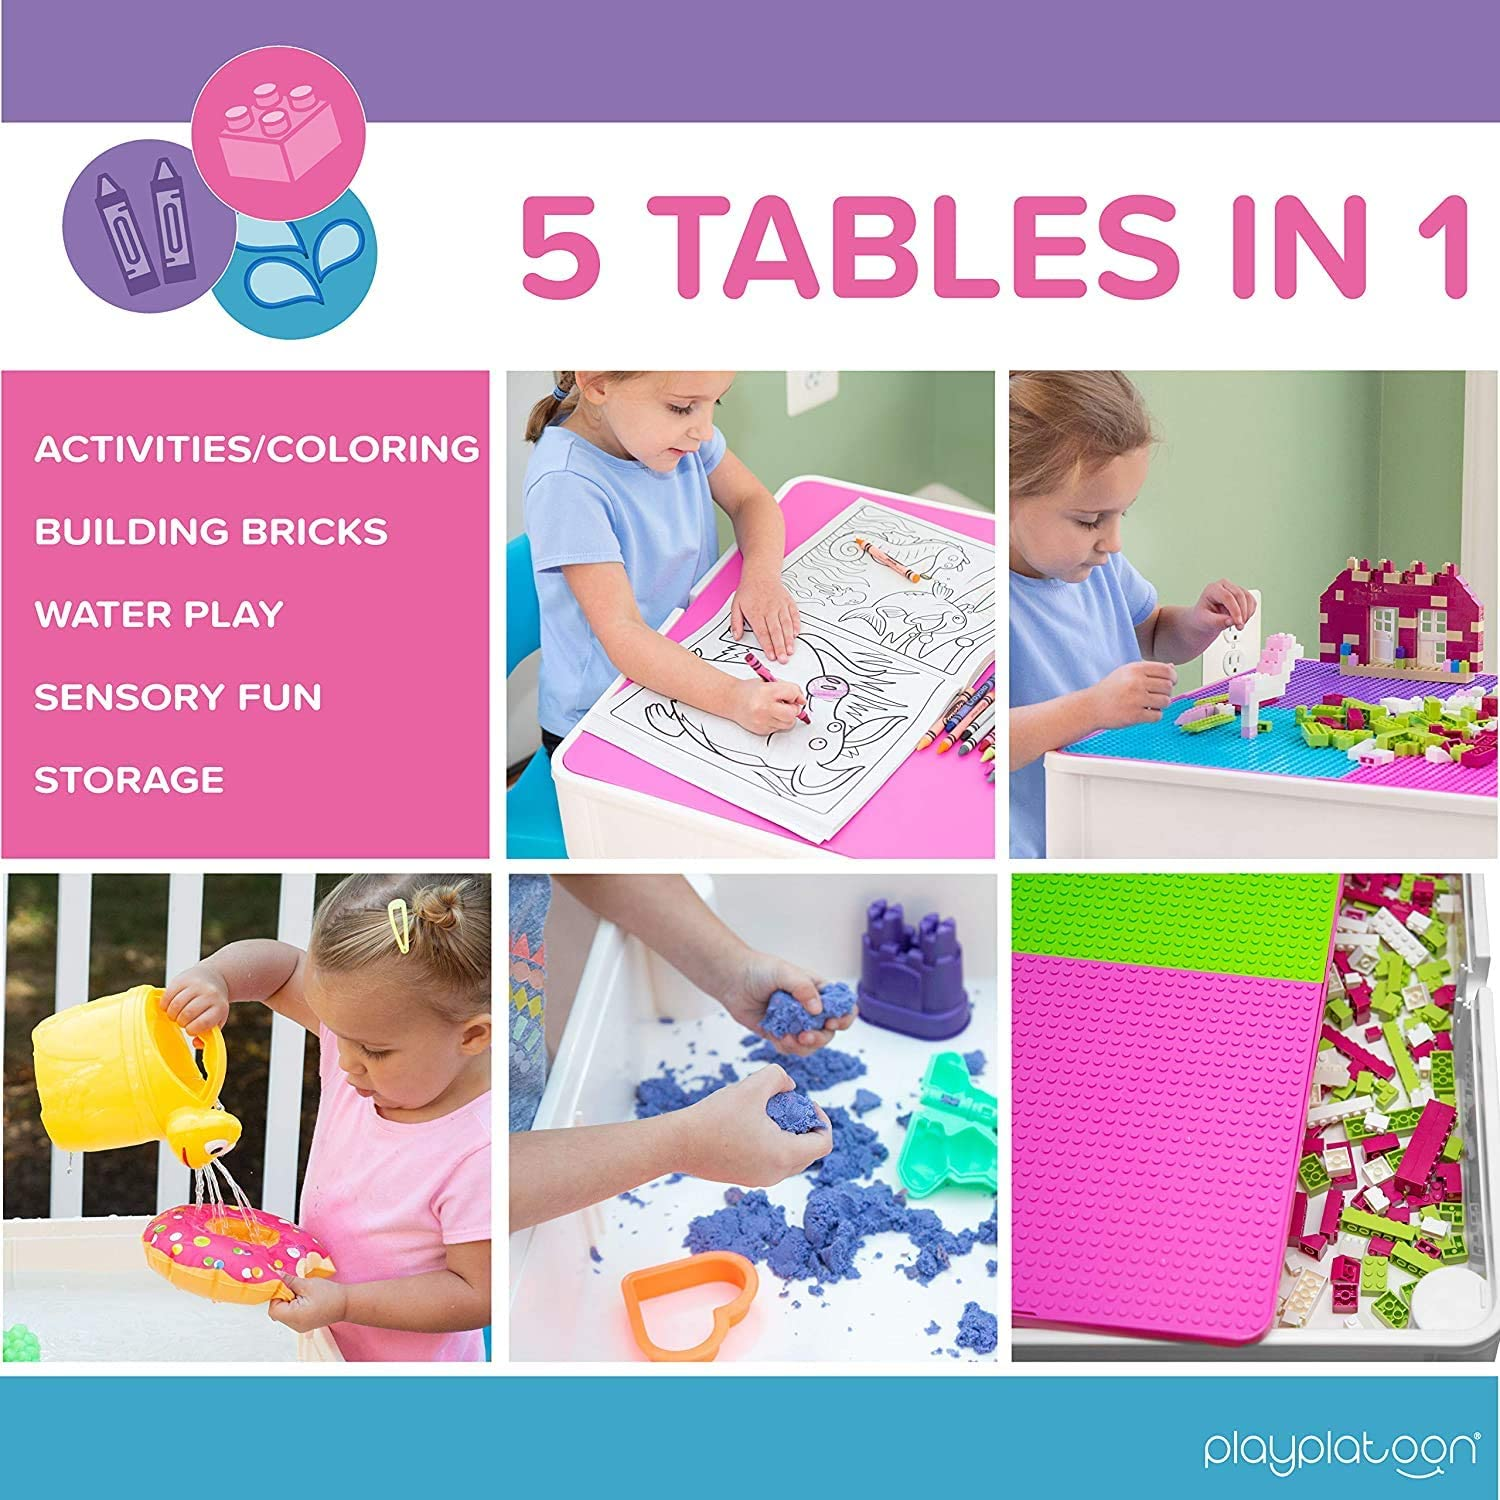 Kids Activity Table Set - 5 in 1 Water Table, Building Block Table, Craft Table and Sensory Table with Storage - Includes 2 Chairs and 25 Ex-Large Blocks